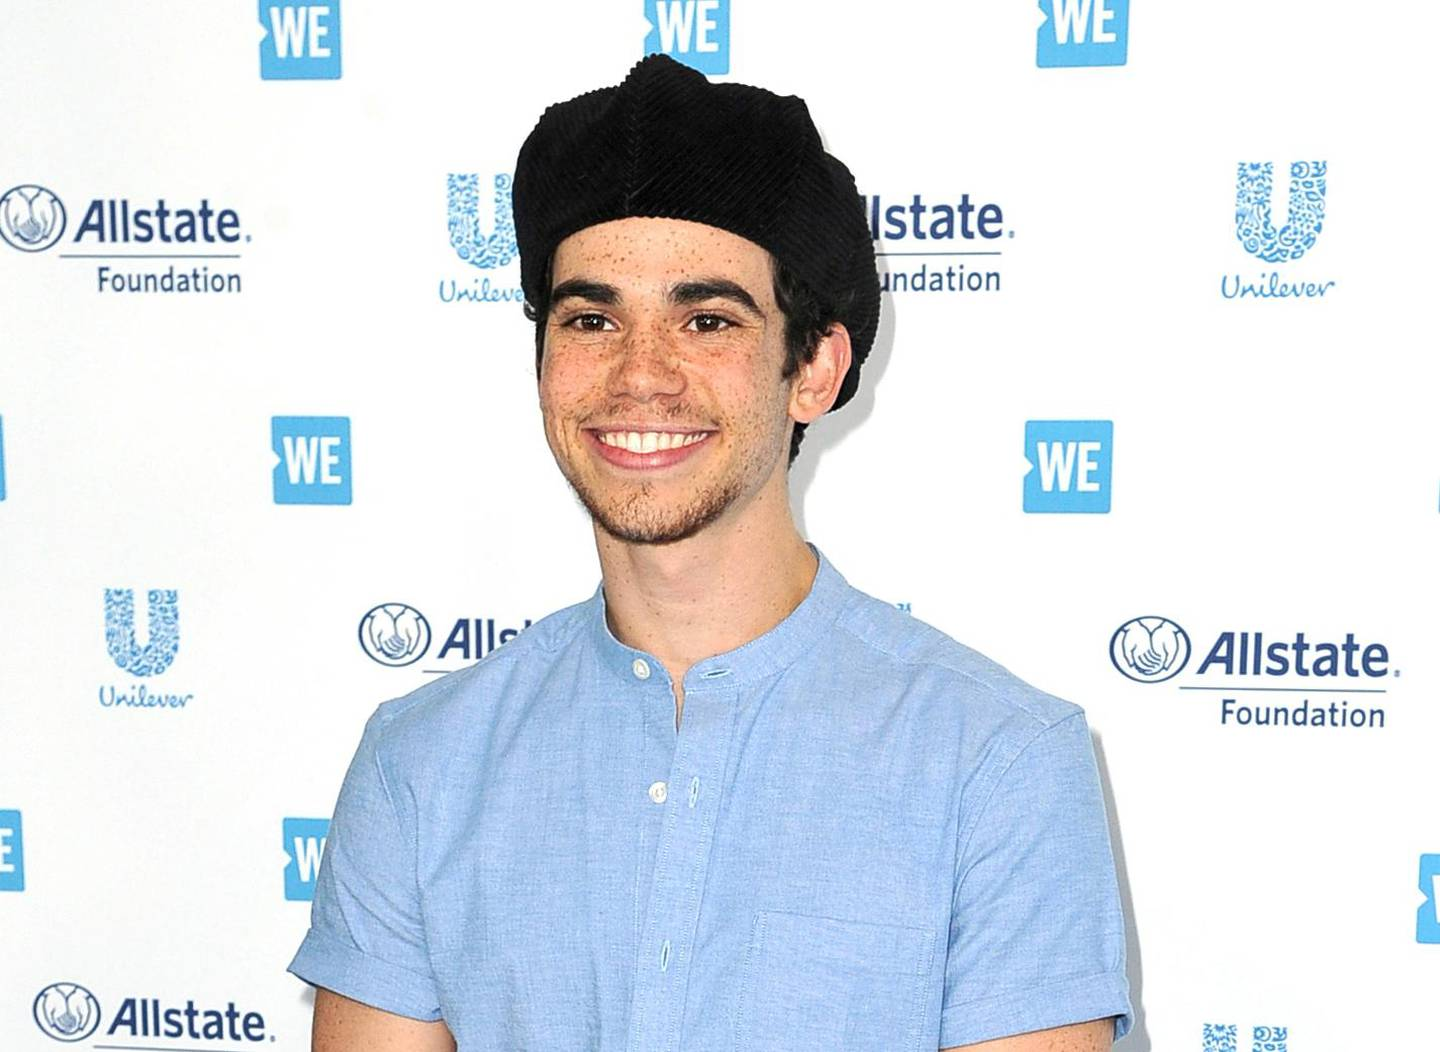 FILE - This April 25, 2019 file photo shows actor Cameron Boyce at WE Day California in Inglewood, Calif. Los Angeles coroners officials said Tuesday, July 30, 2019, that Boyce died unexpectedly from epilepsy. He was pronounced dead at his home on July 6. (Photo by Richard Shotwell/Invision/AP, File)